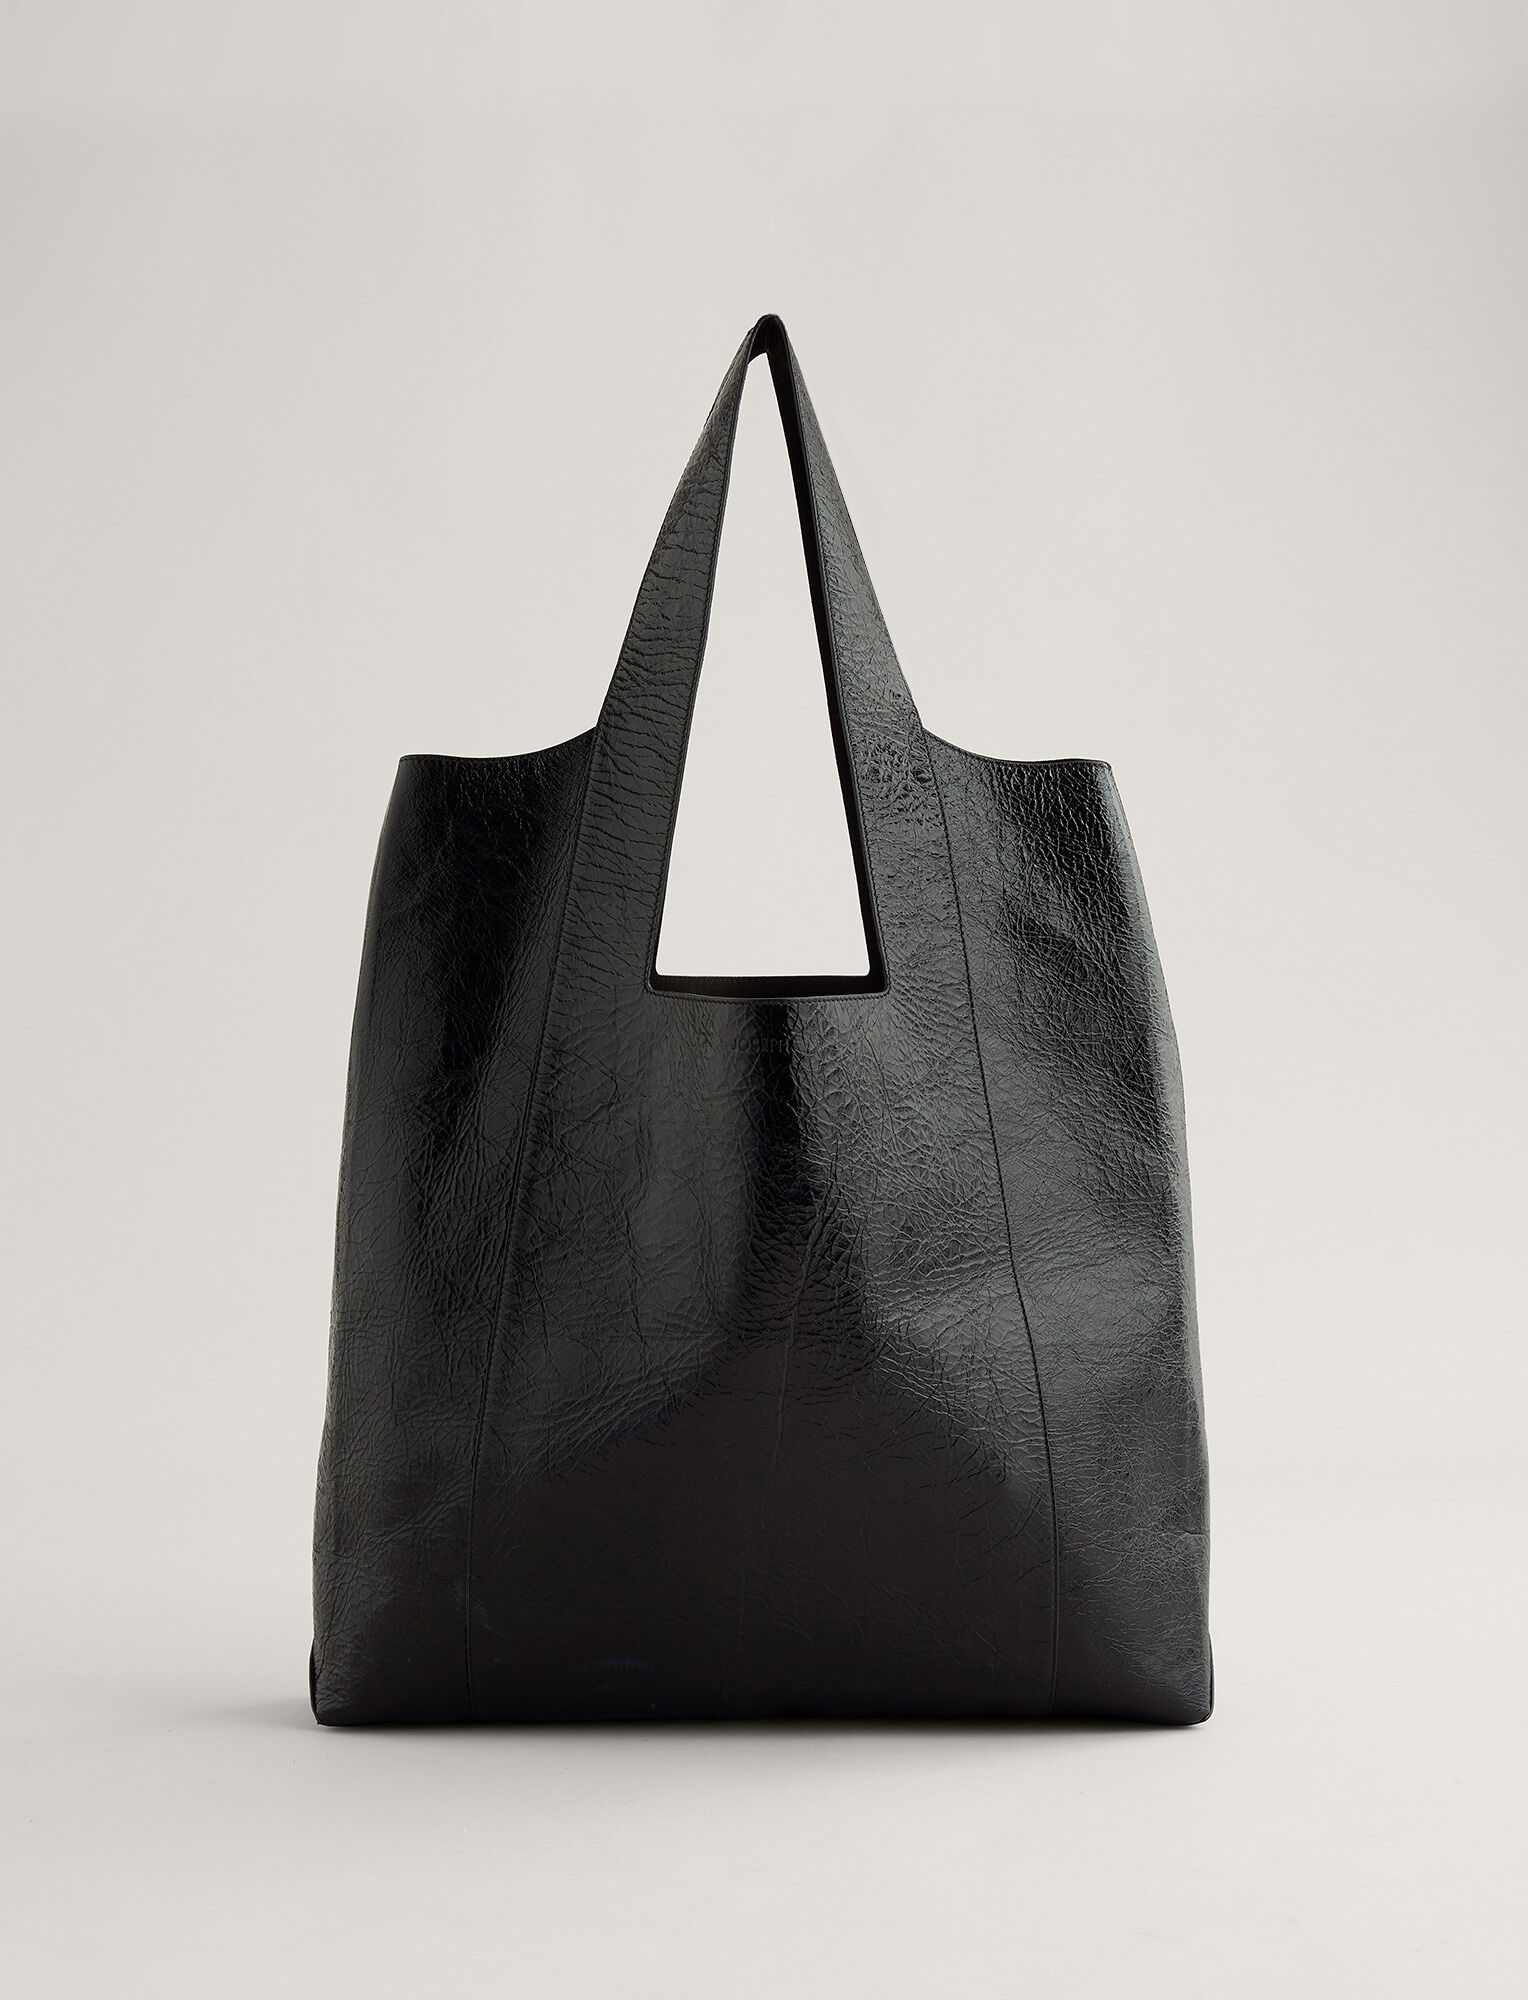 Joseph, Westbourne Leather Bag, in BLACK